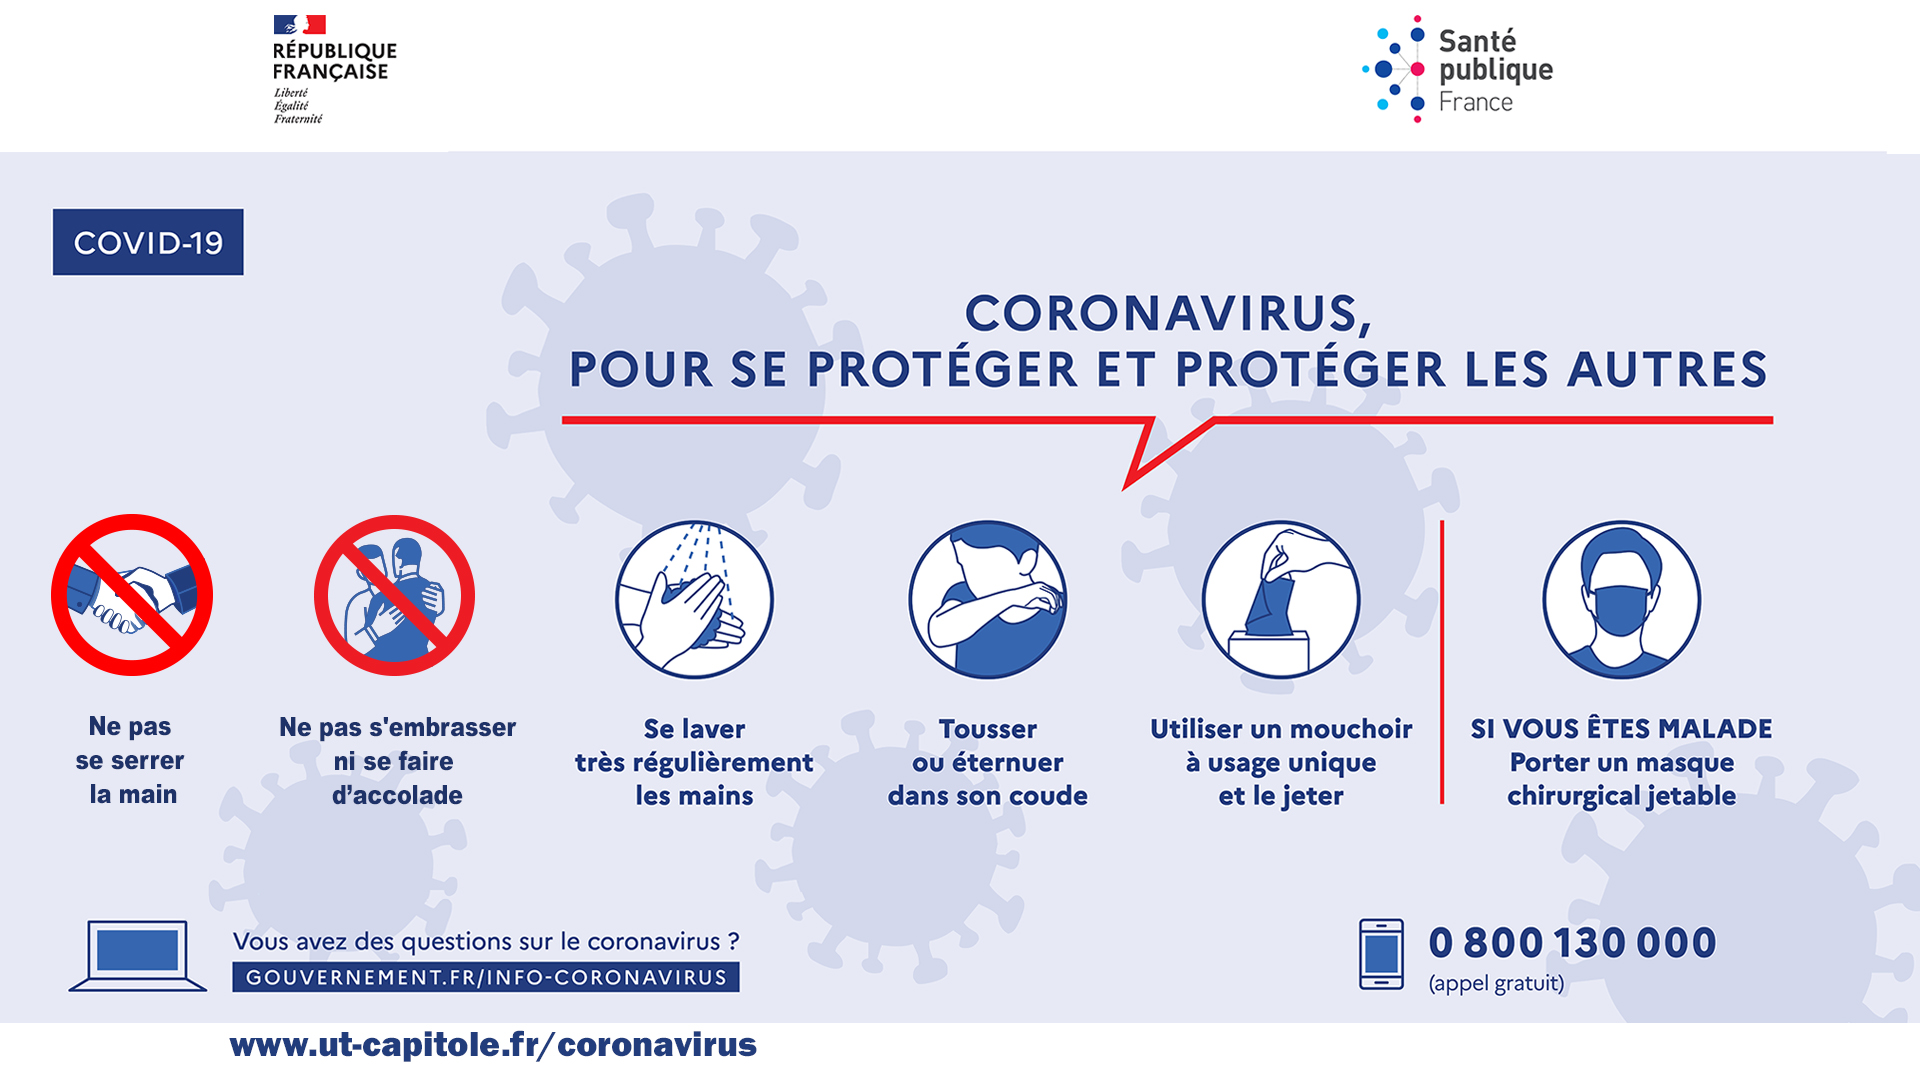 https://www.tsm-connect.fr/medias/editor/files/Actualites/Coronavirus_FR.jpg